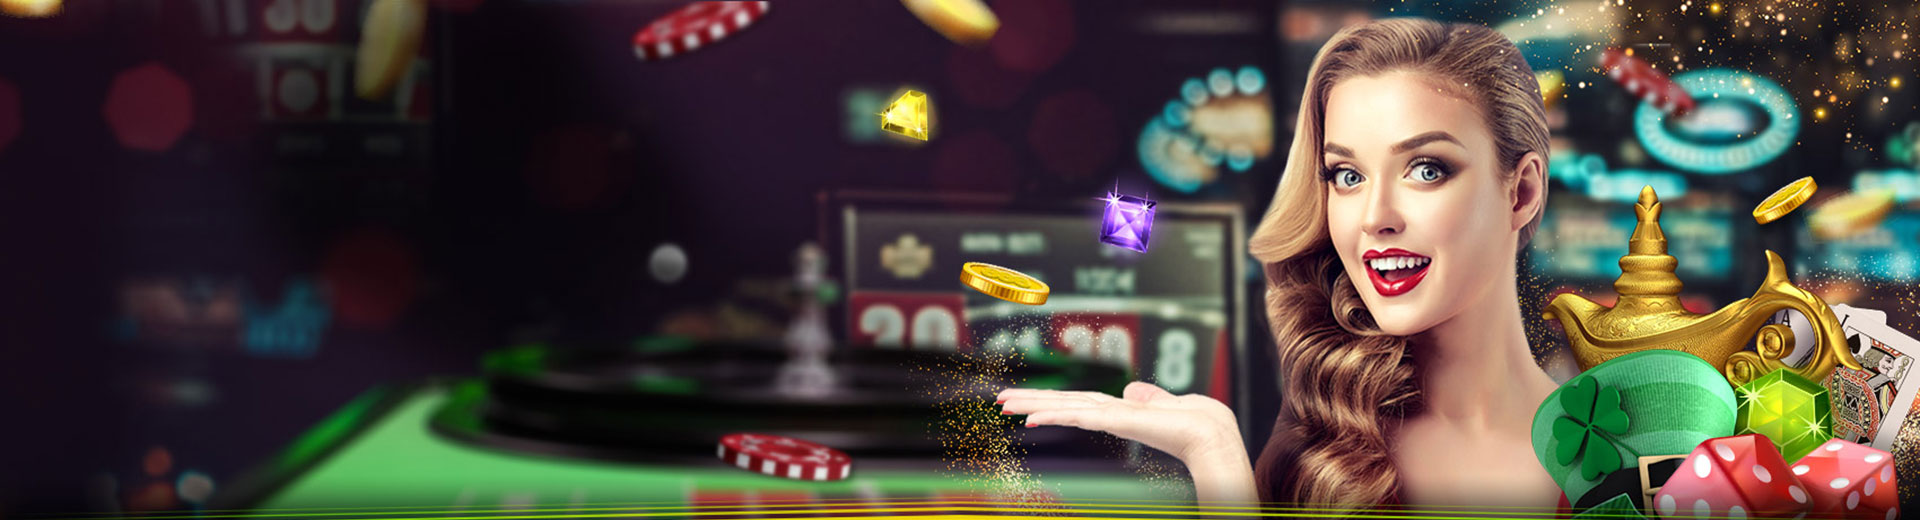 Enjoy Casino And Assurance Of Security With Horus Casino